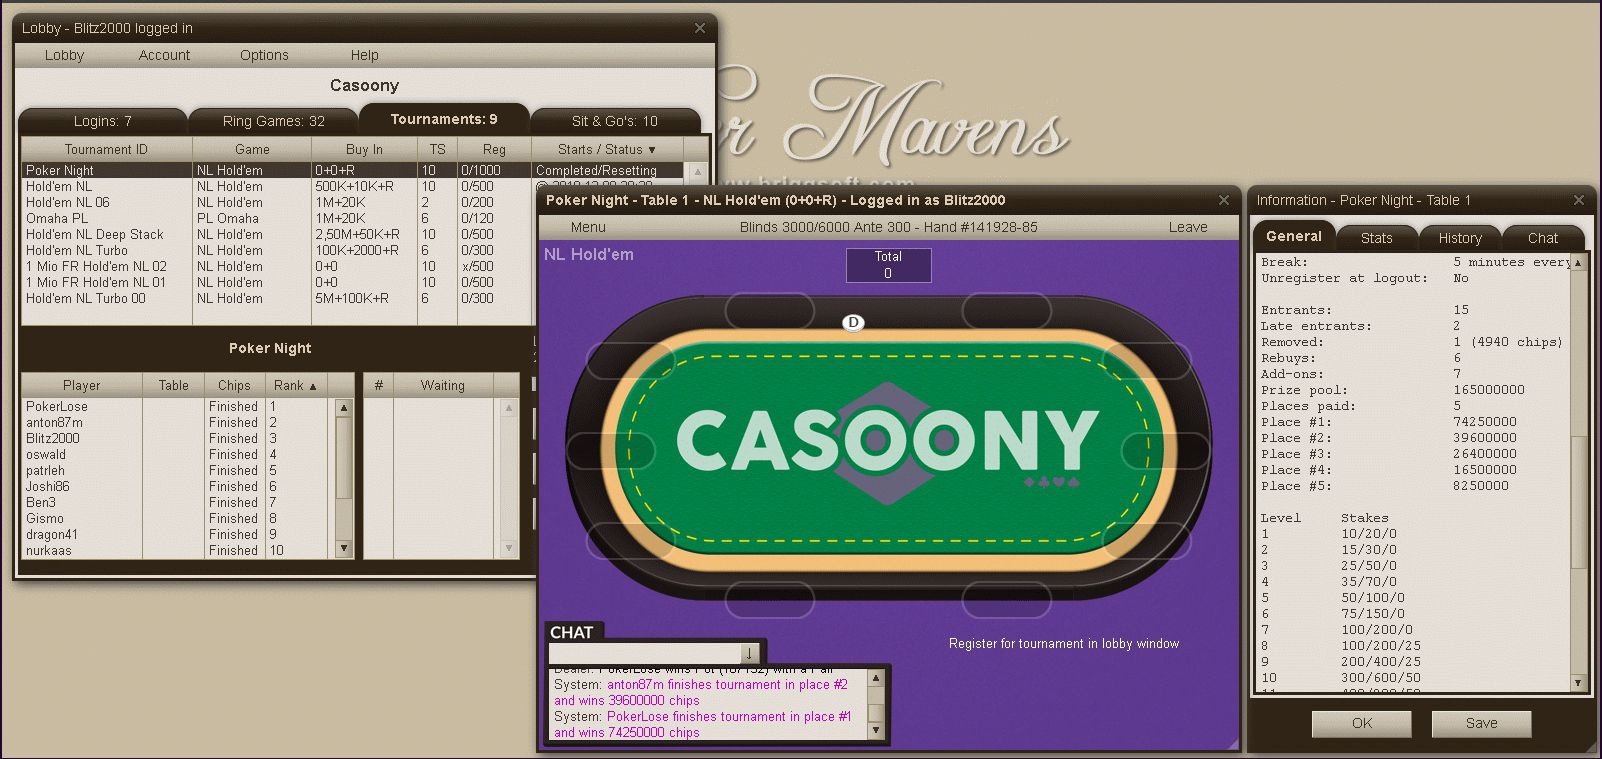 Casoony_Poker_Lobby-PokerNight_20191208_2129_3RDPLACE_SHOW.gif